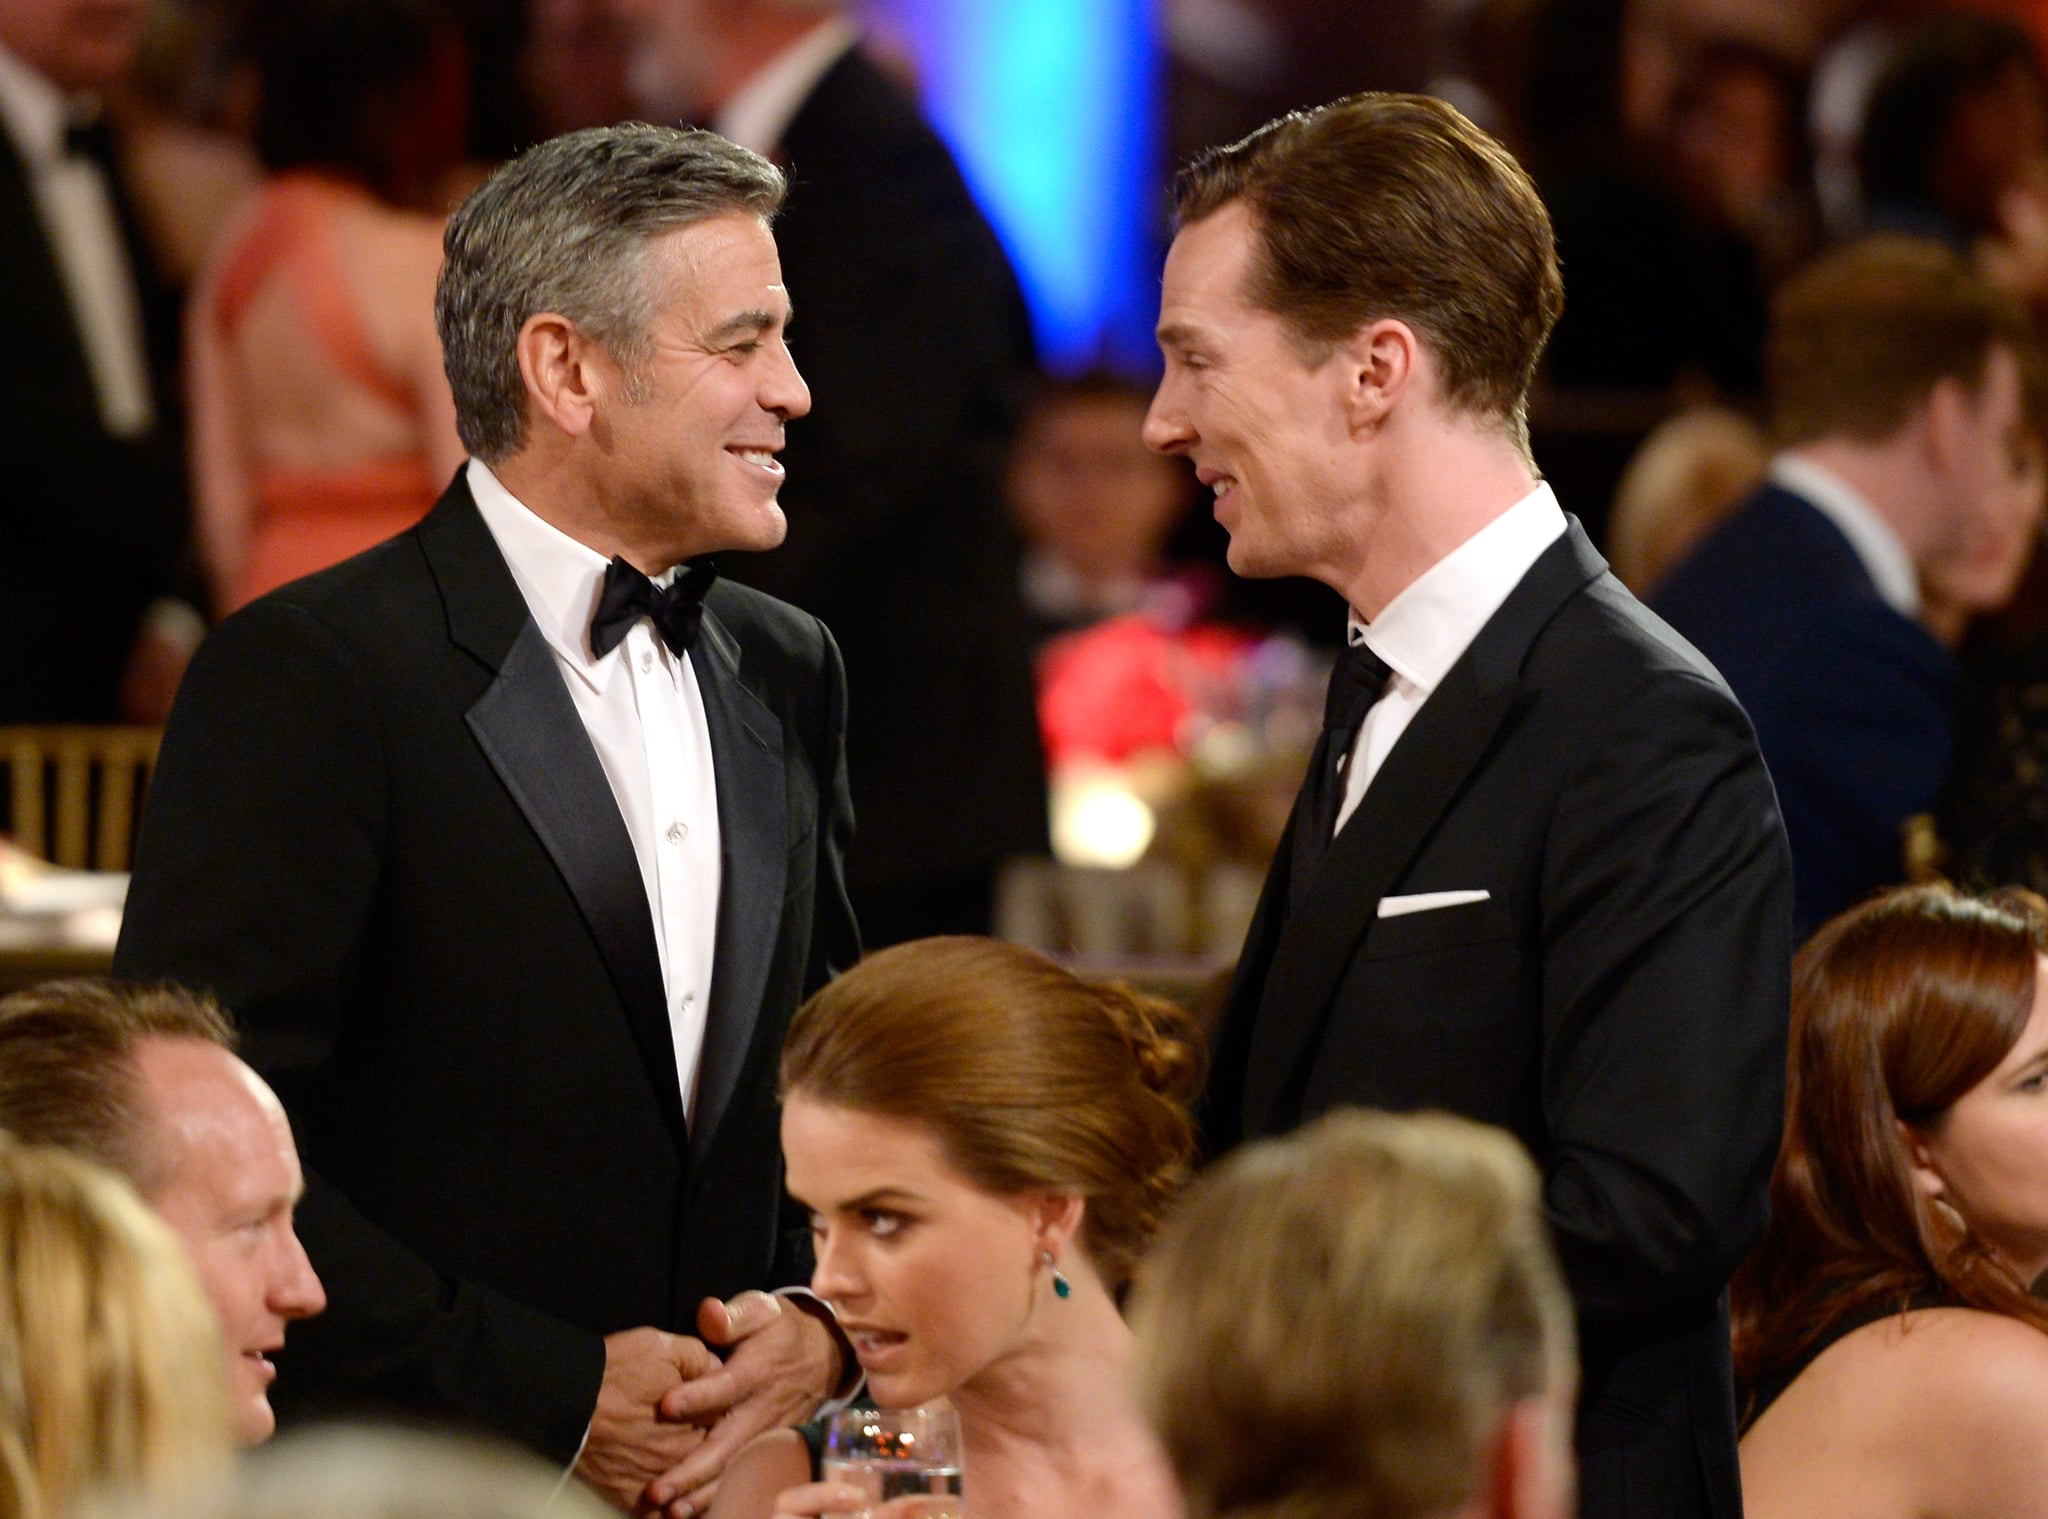 George Clooney mingled with Benedict Cumberbatch during the gala.